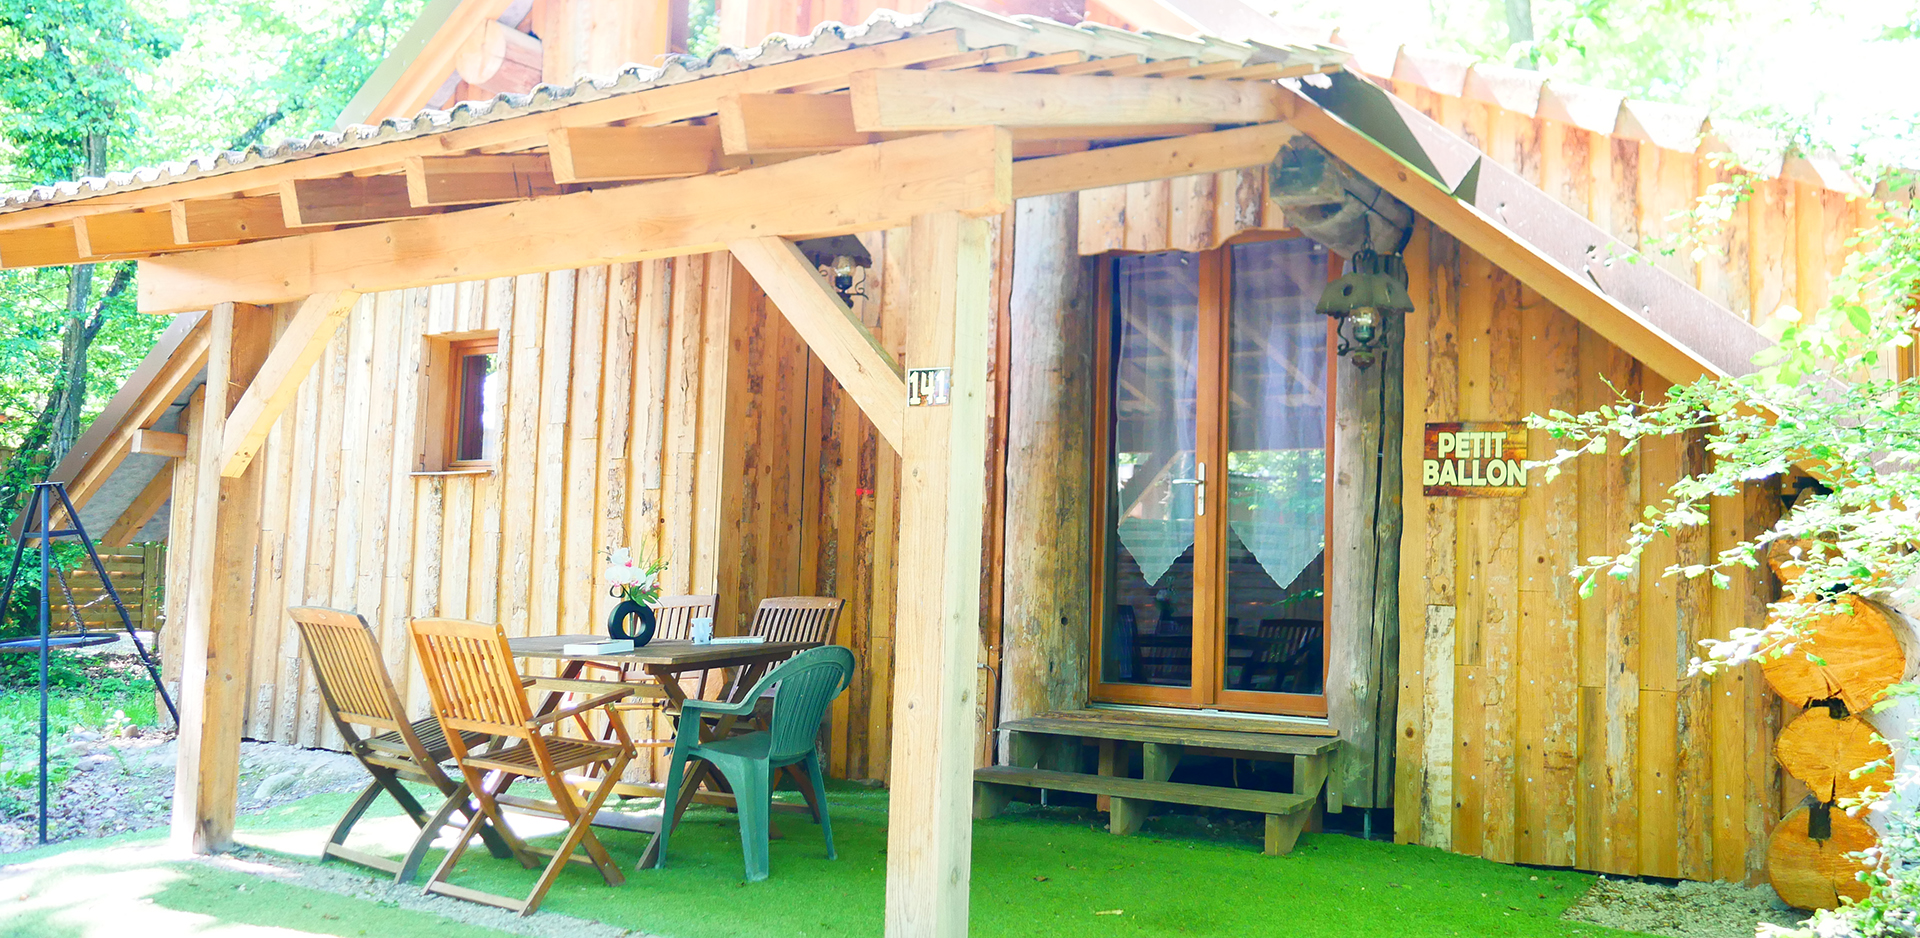 Wooden logs chalet up for holidays rental in Alsace